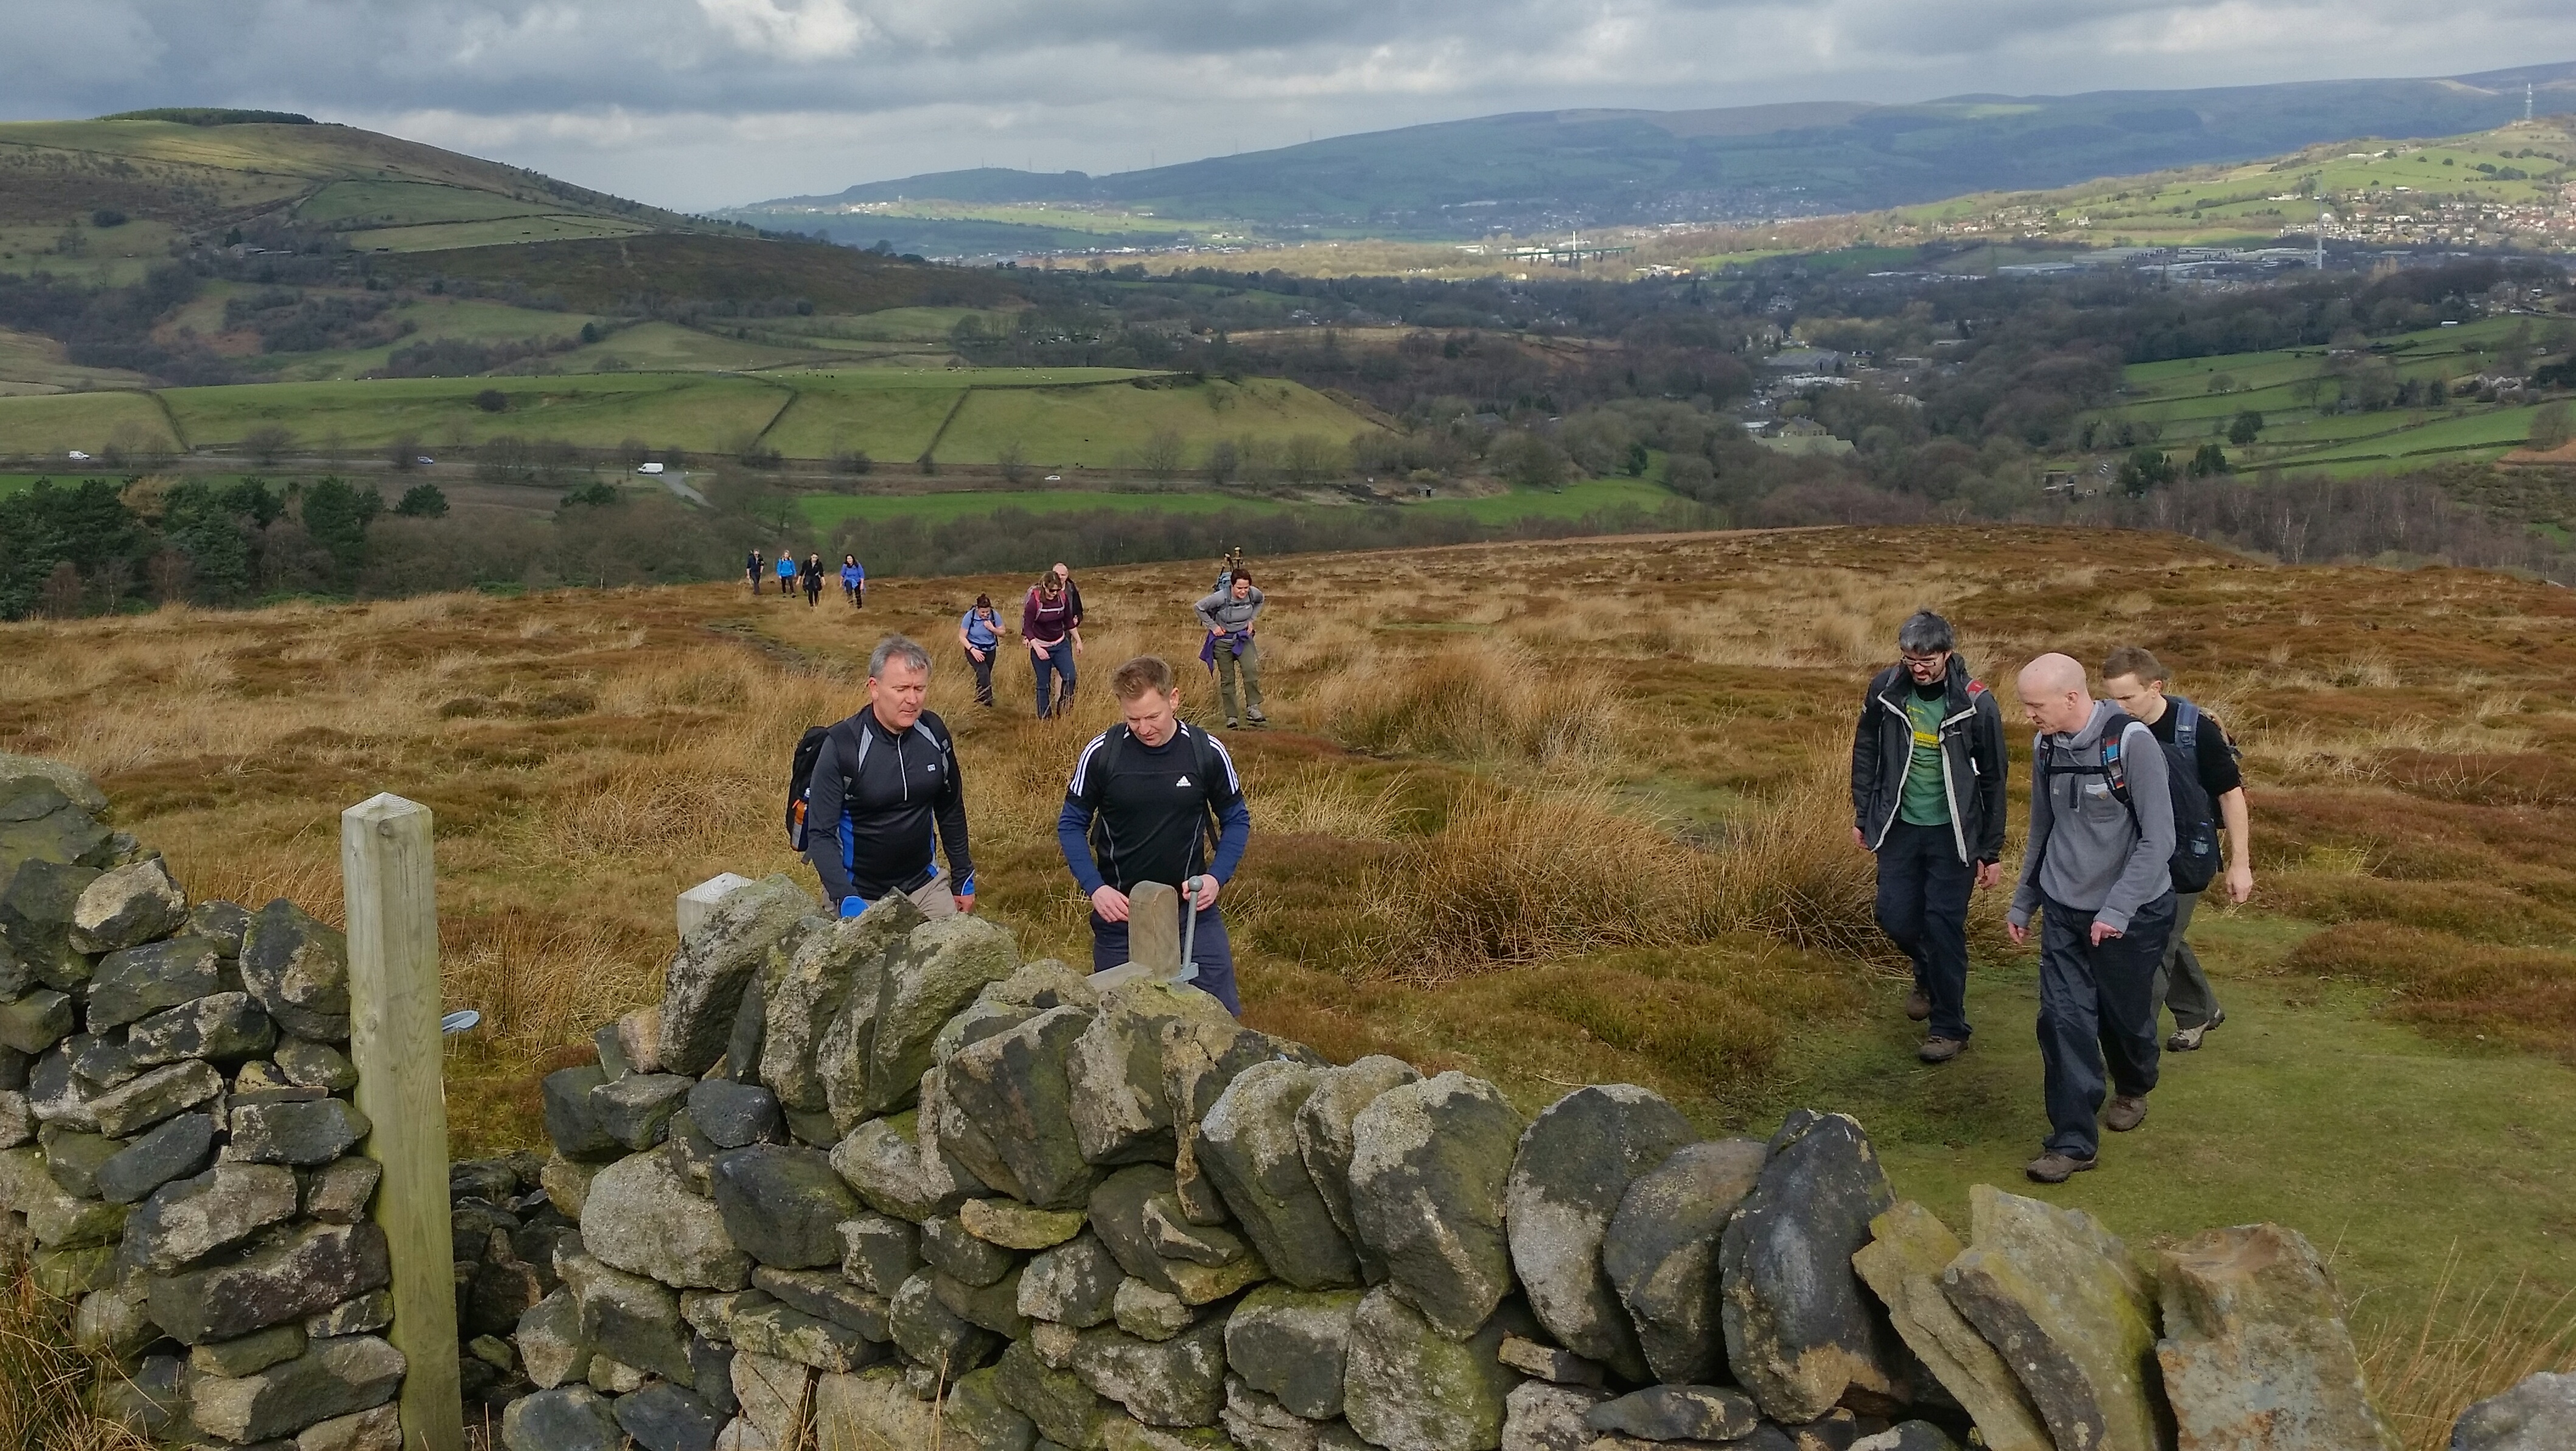 Freshwalks Glossop to Kinder downfall hike dark peak